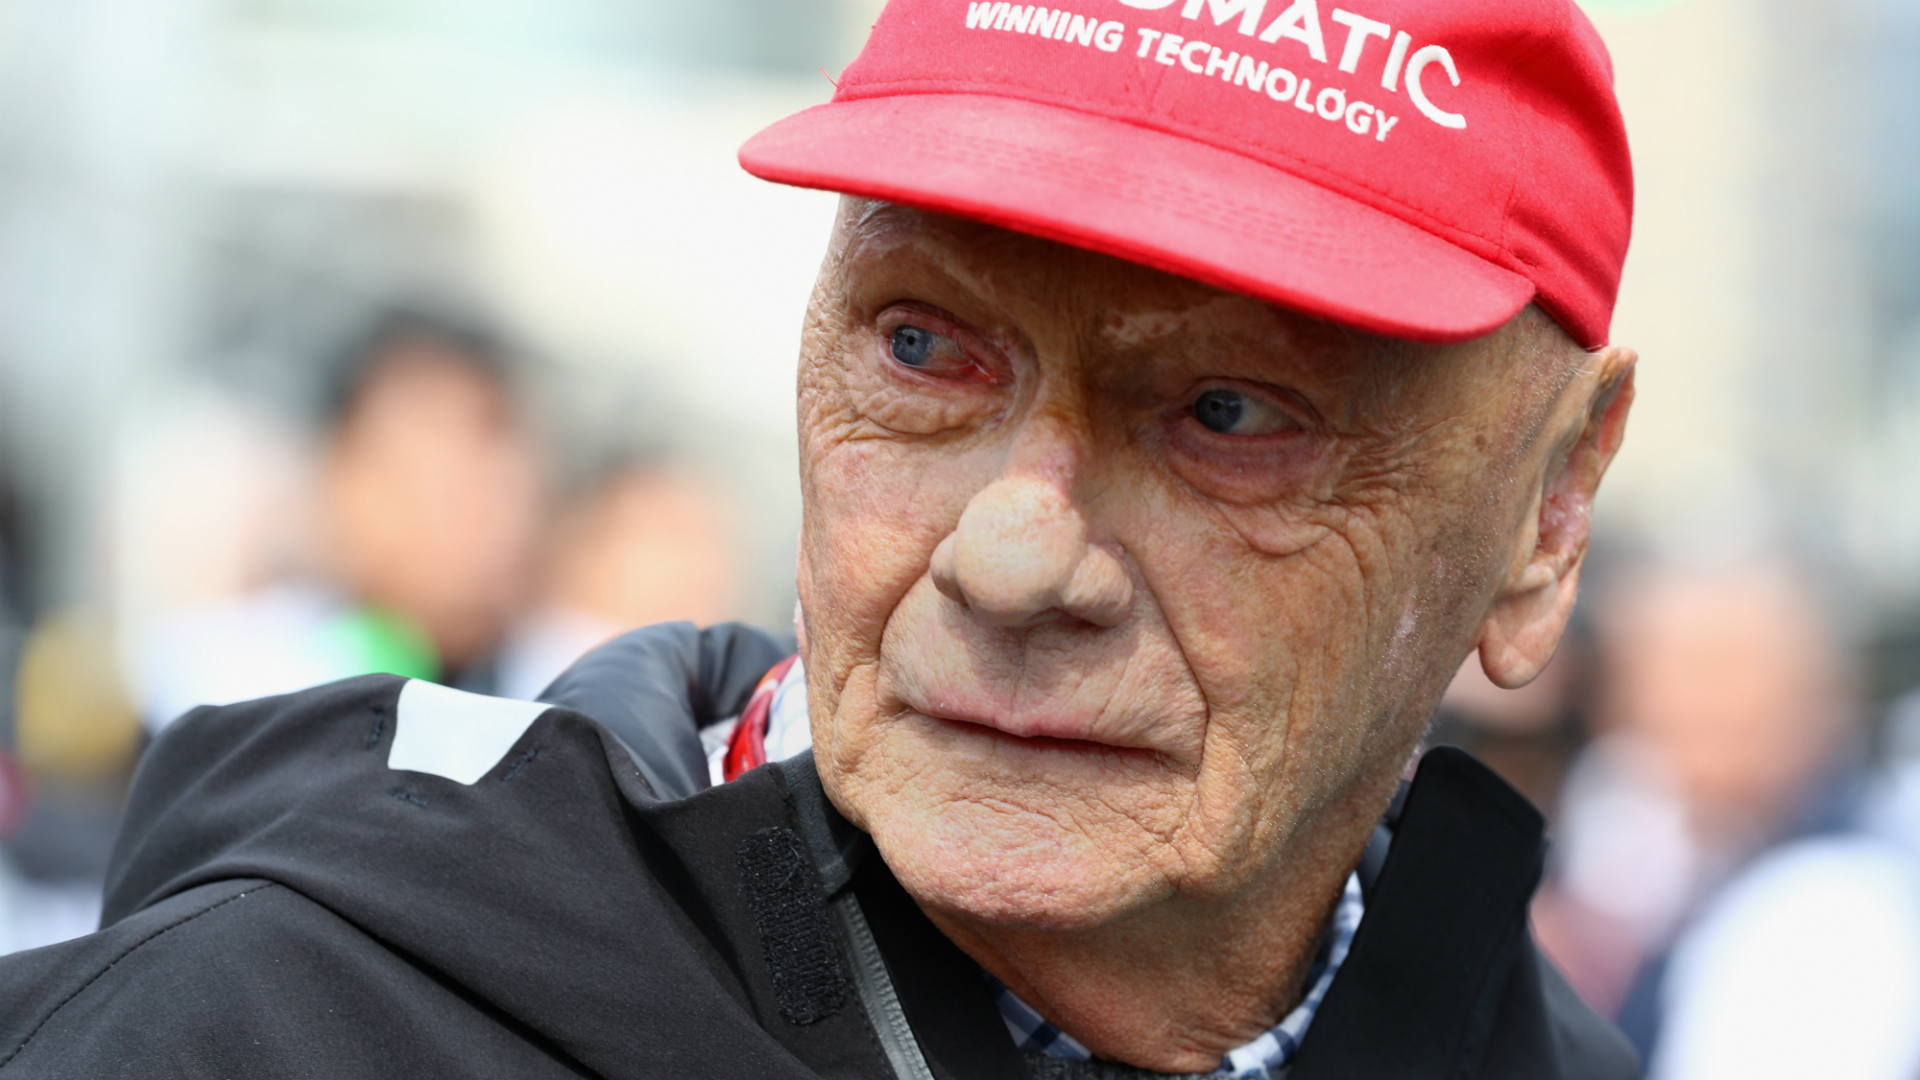 Former F1 driver and three-time world champion Niki Lauda